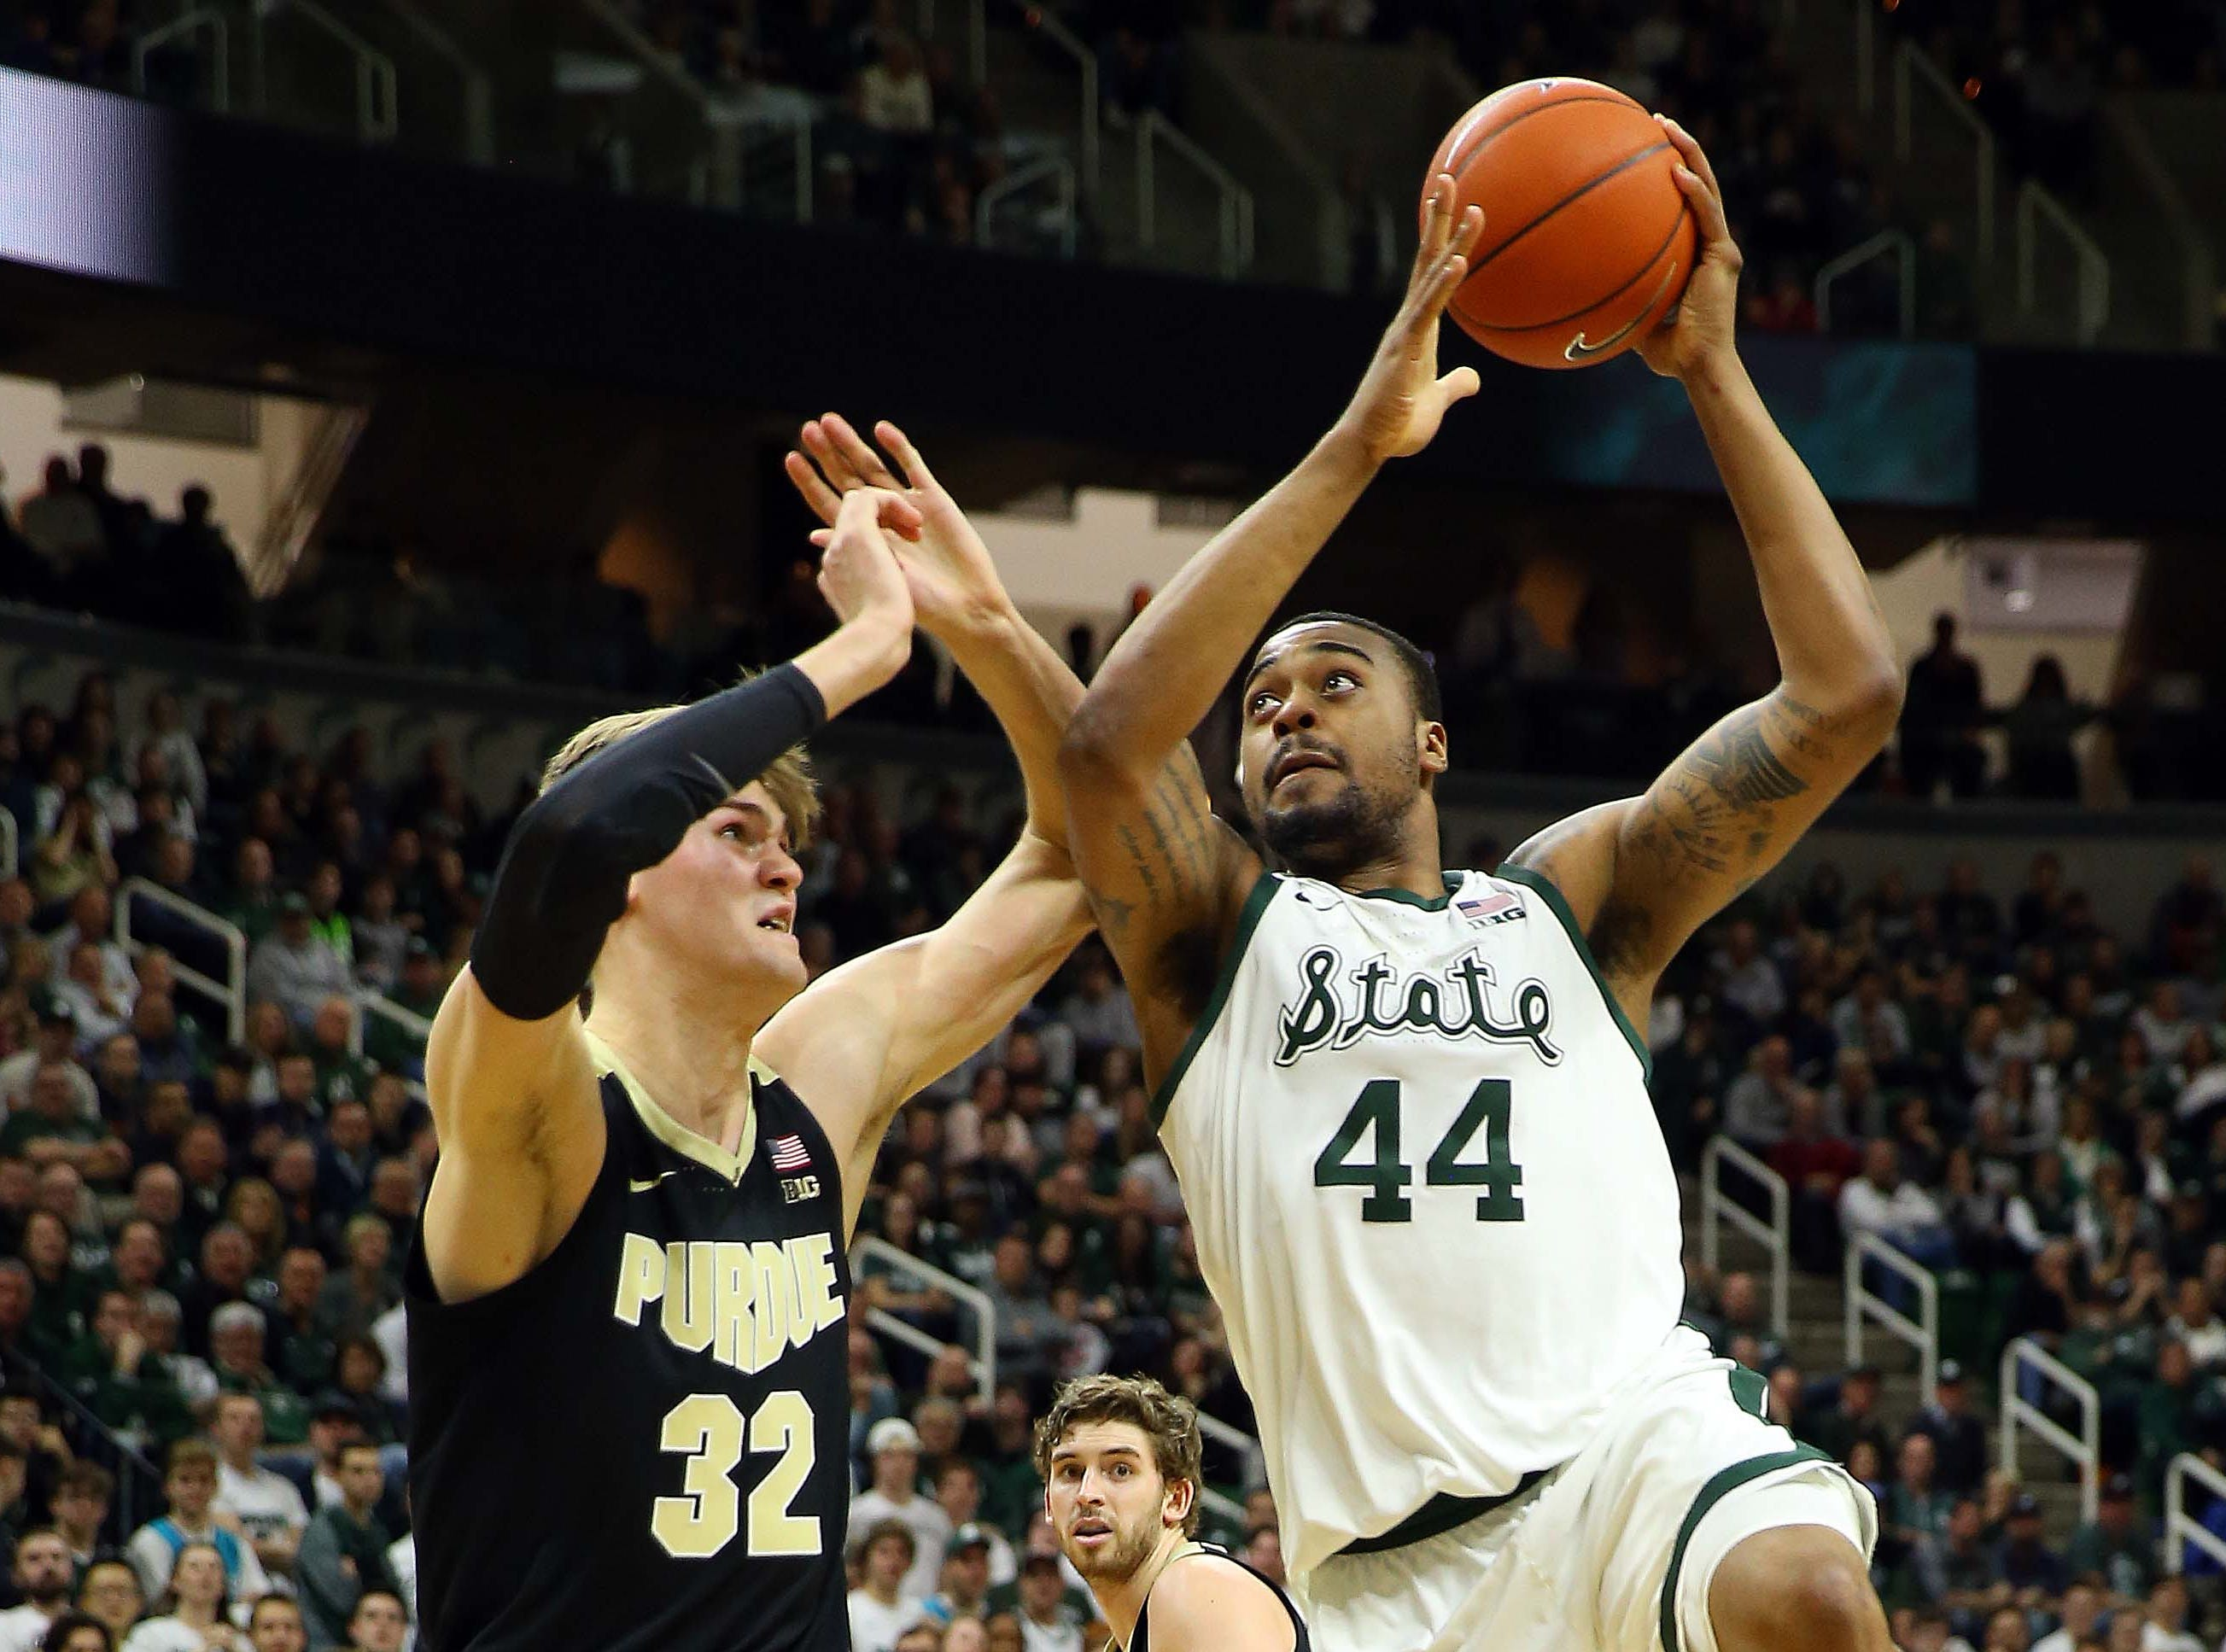 Jan 8, 2019; East Lansing, MI, USA; Michigan State Spartans forward Nick Ward (44) is defended by Purdue Boilermakers center Matt Haarms (32) during the second half of a game at the Breslin Center. Mandatory Credit: Mike Carter-USA TODAY Sports